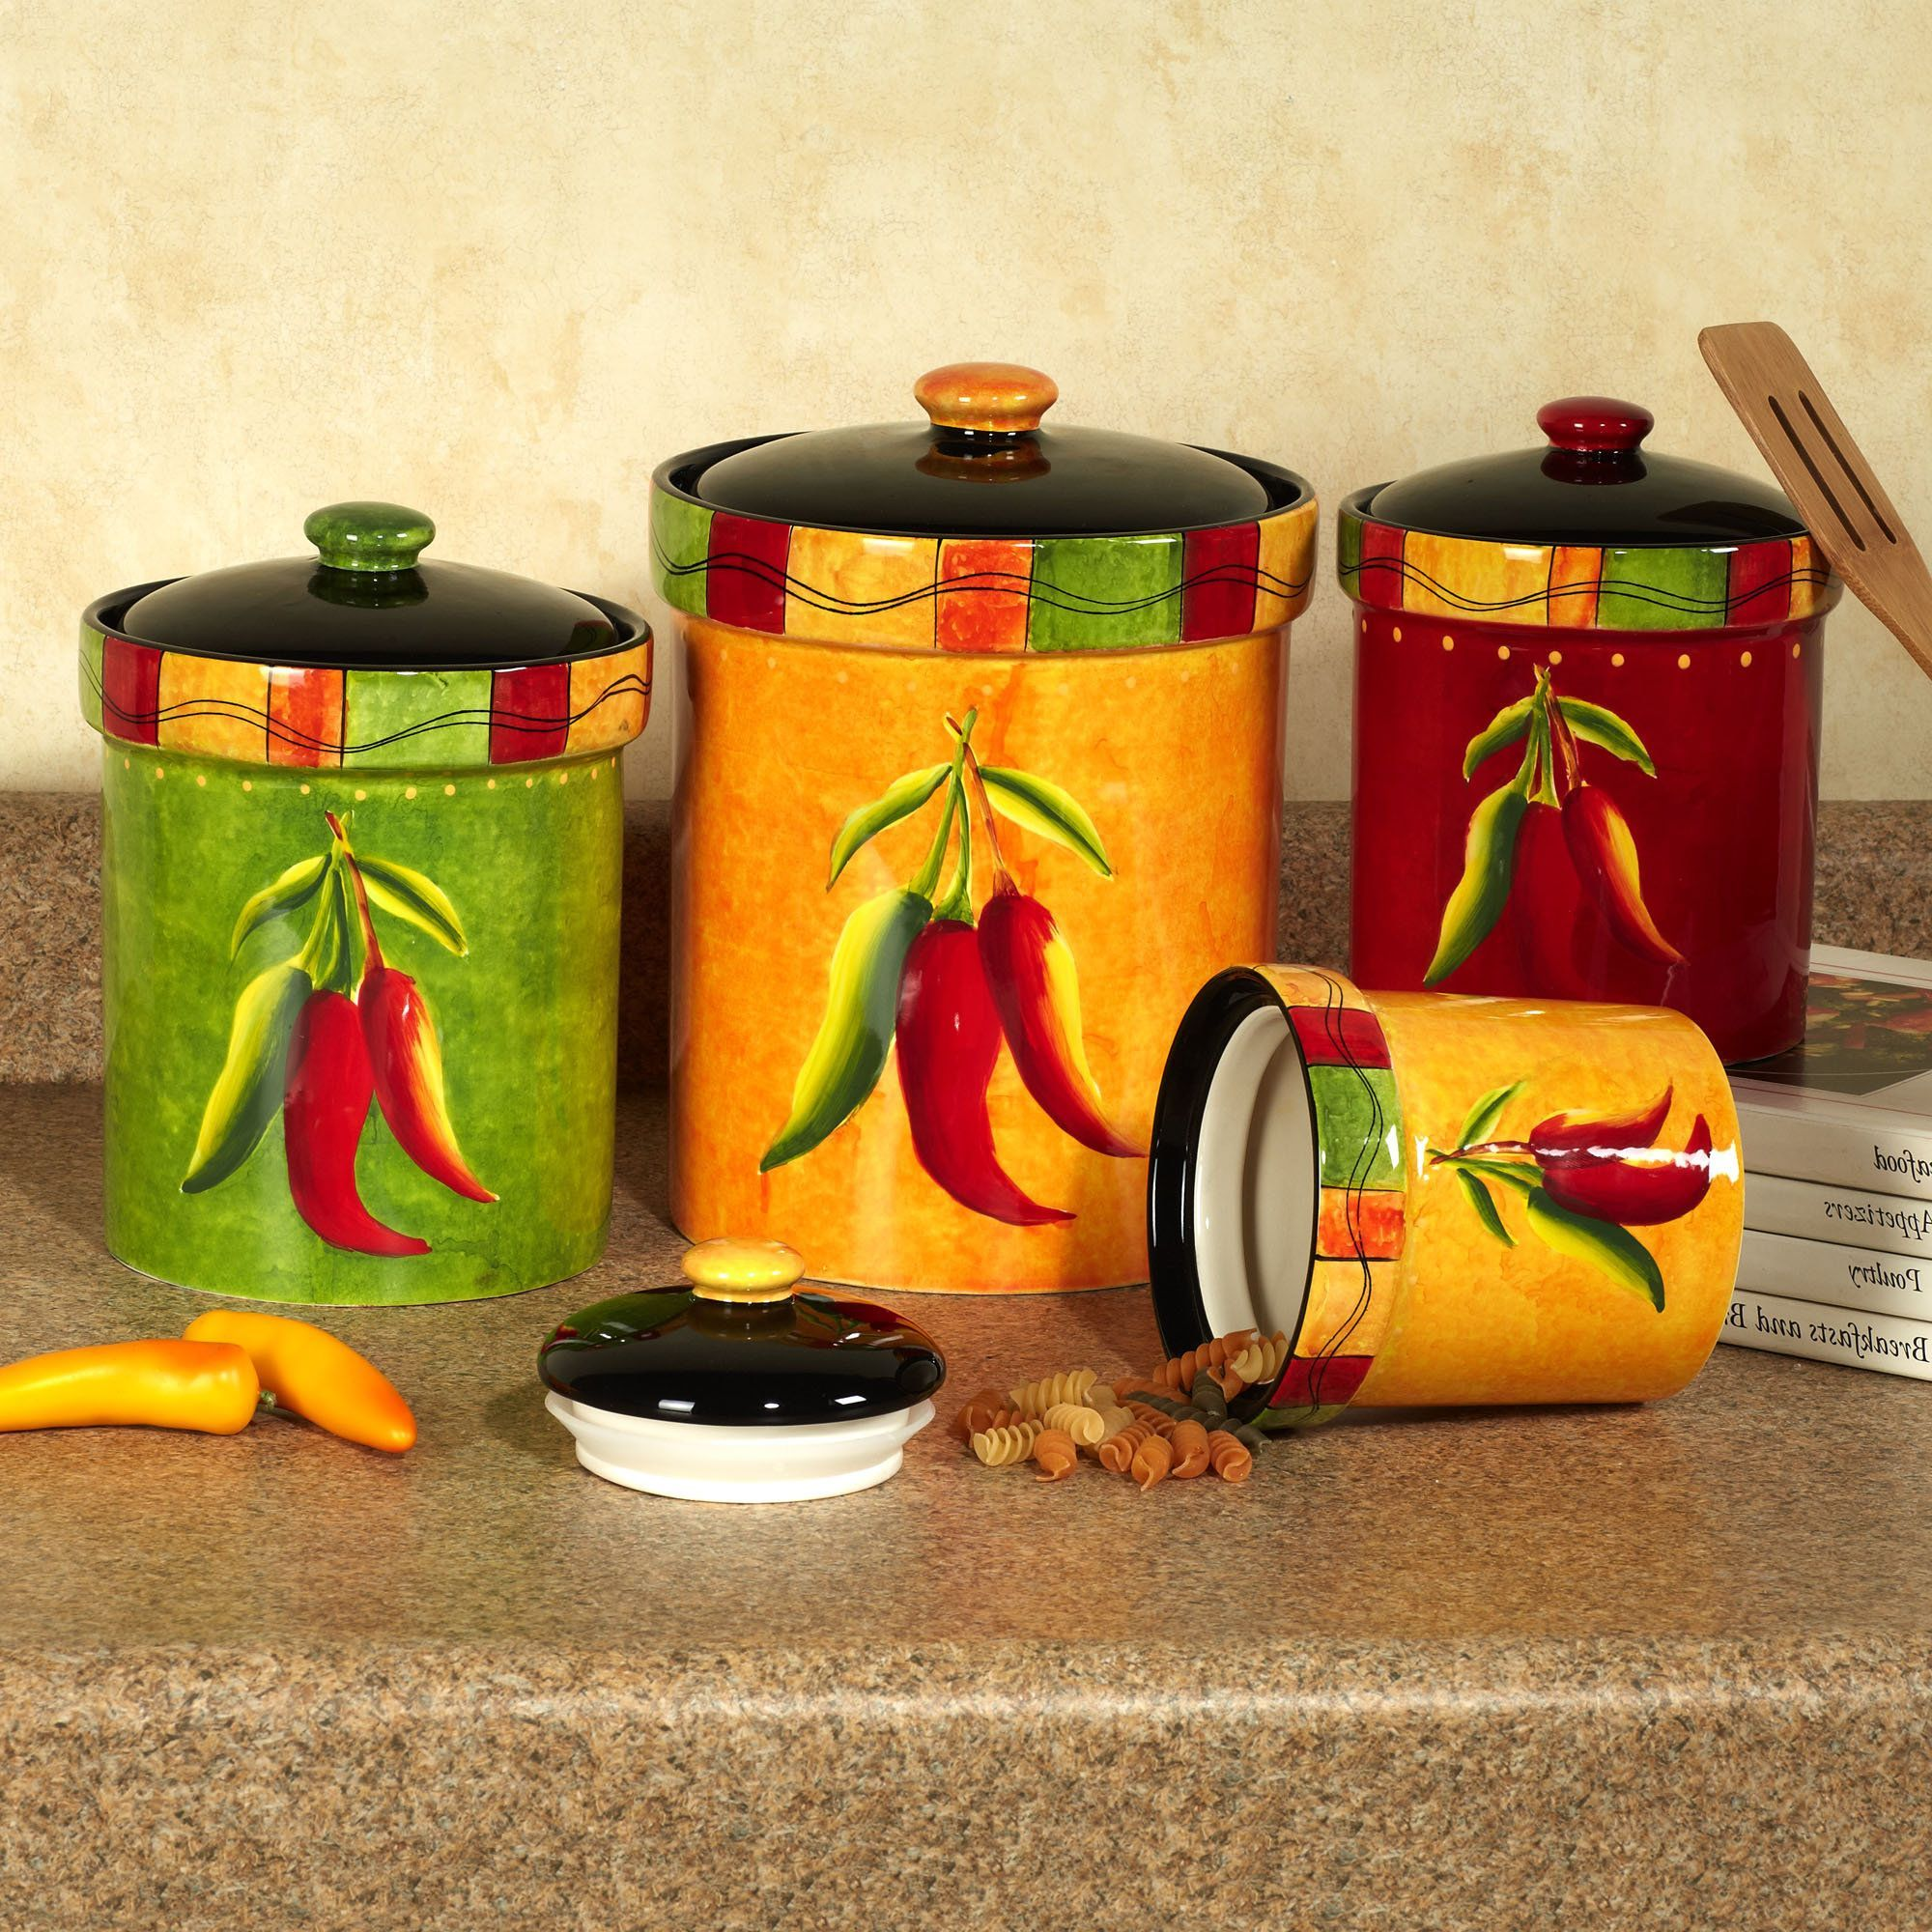 Discount Home Decor Catalogs: Of Chili Pepper Kitchen Decor : Nice